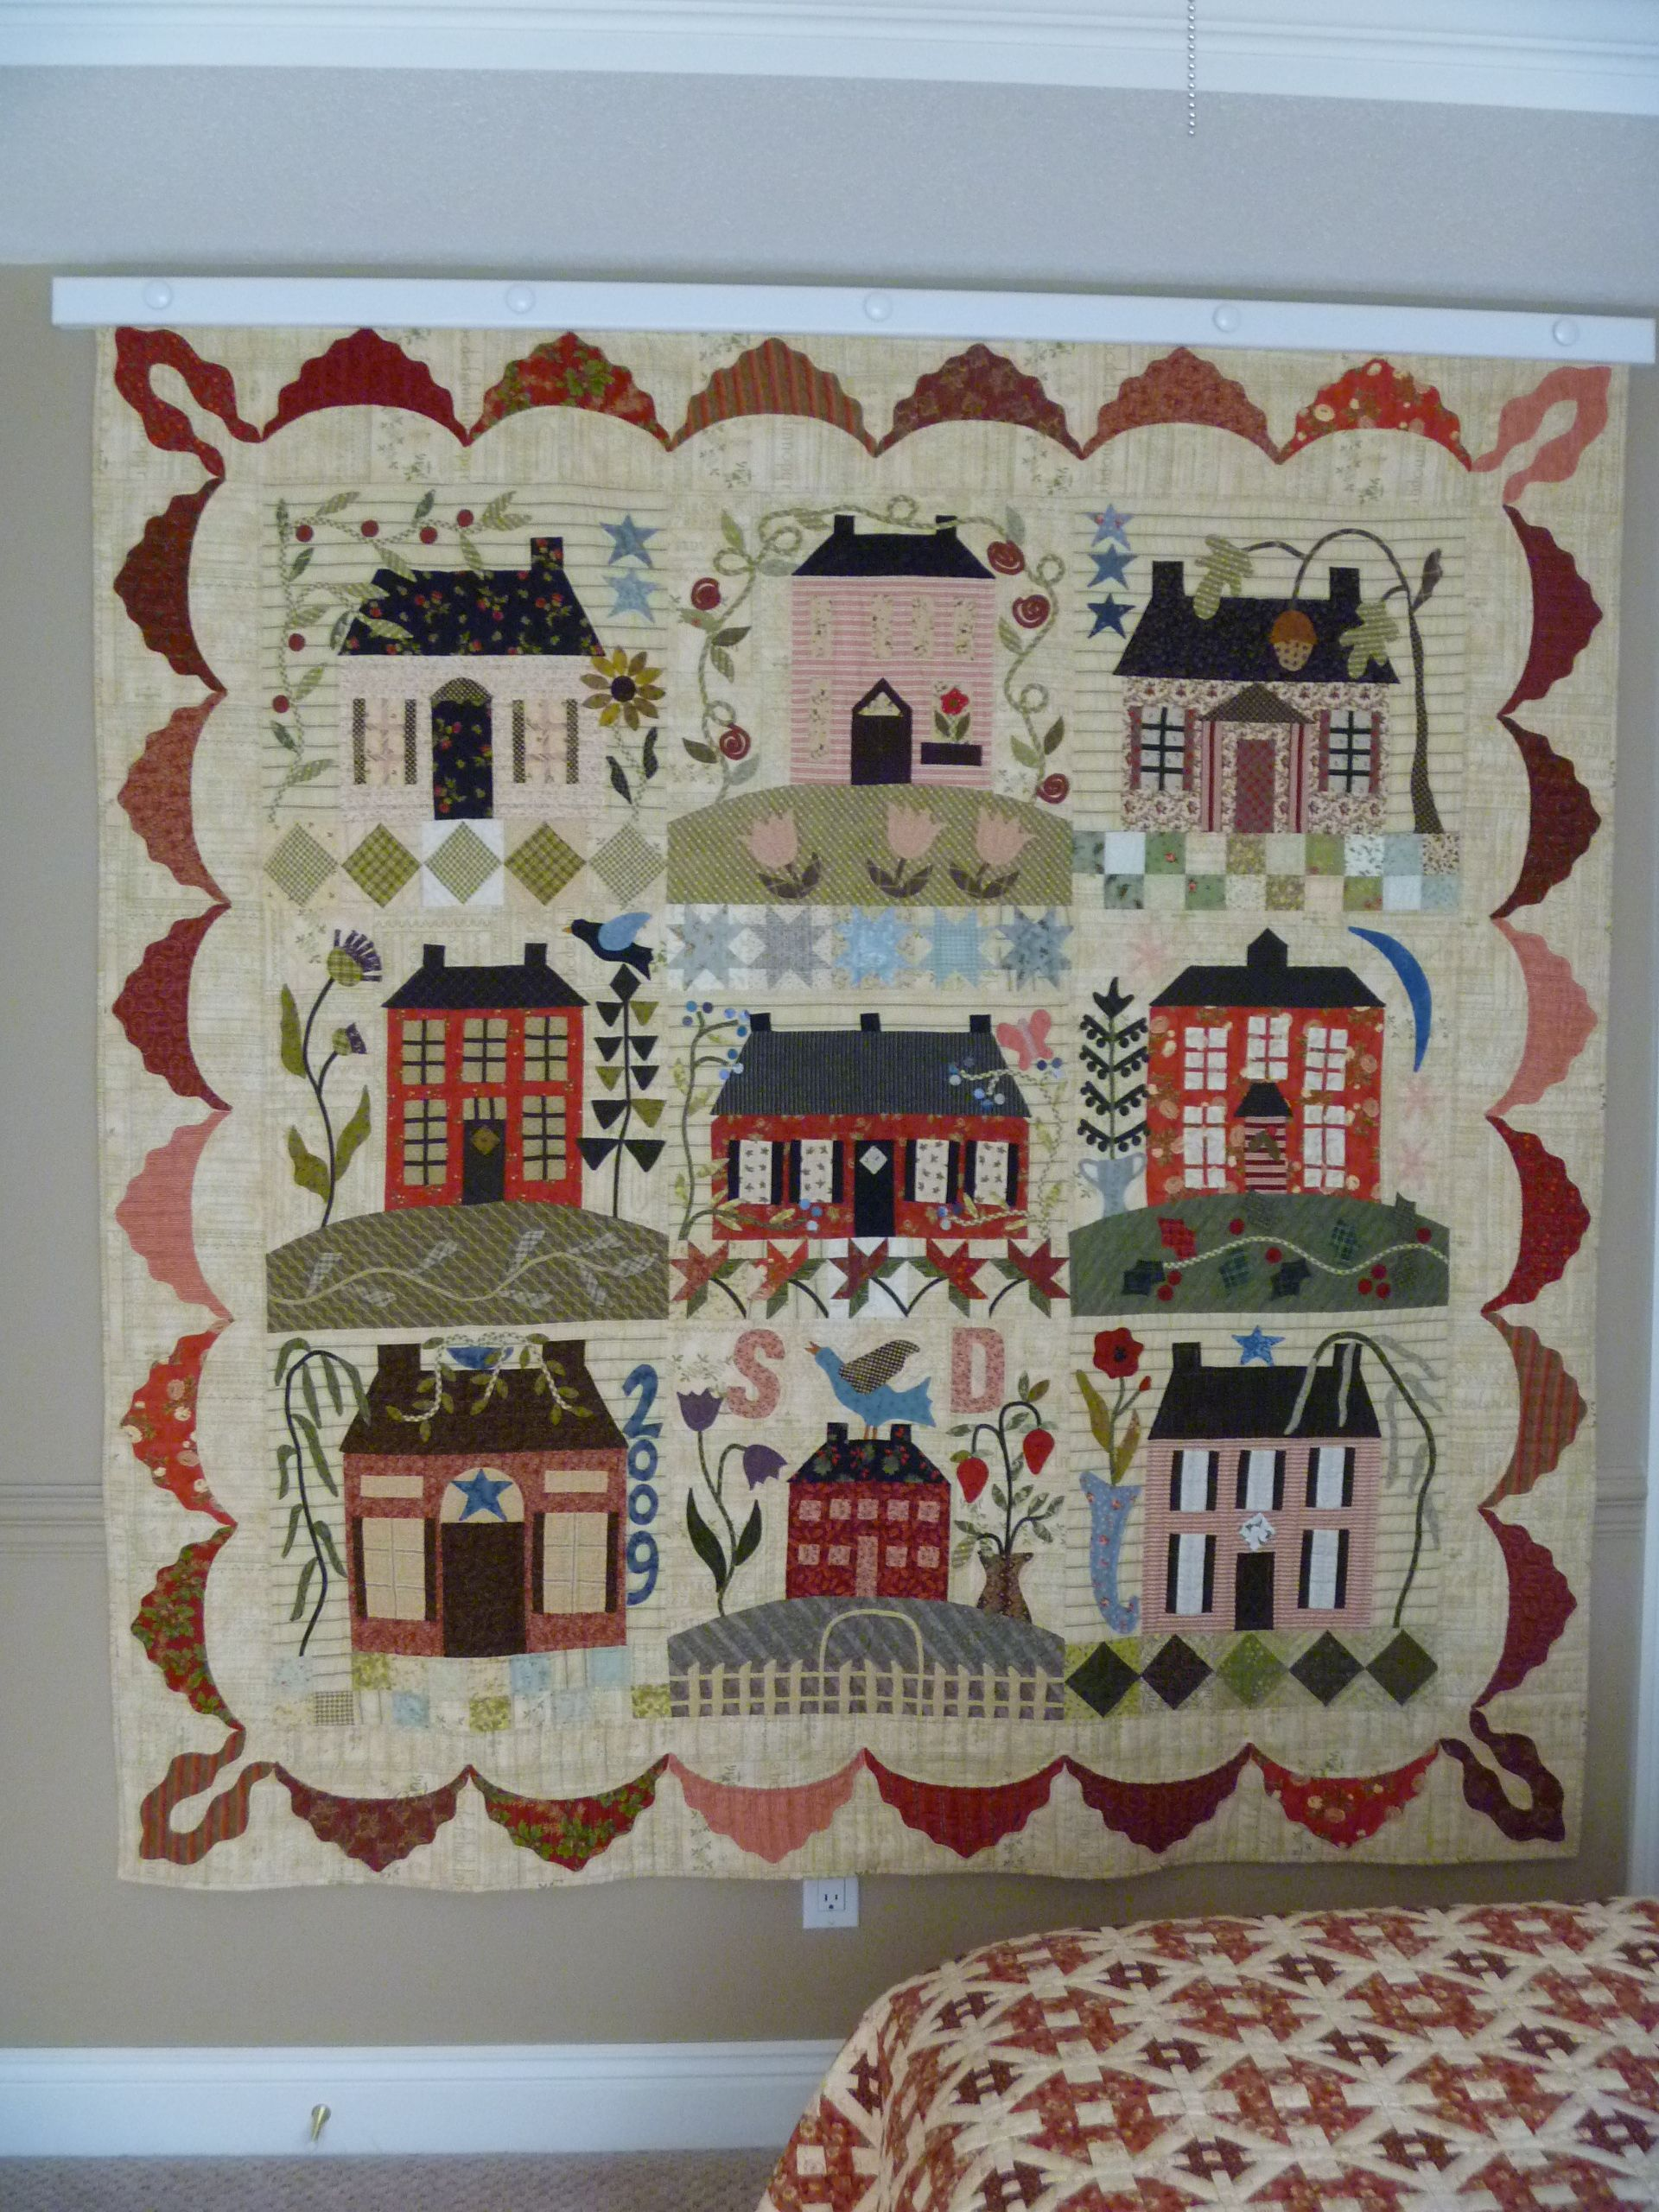 Home Sweet Home. Hand appliqued and hand quilted. Pattern by Blackbird Designs.